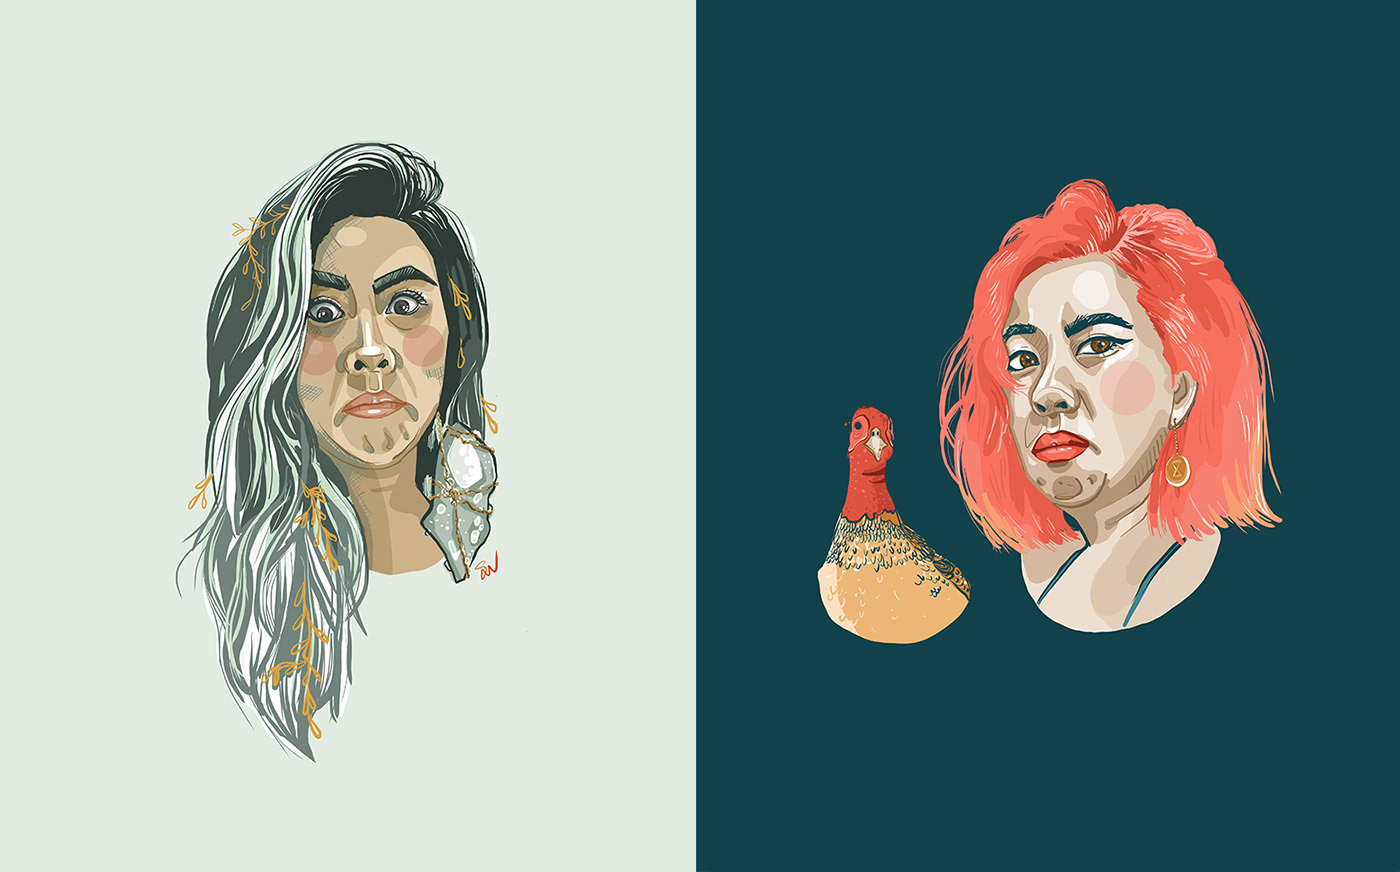 Duo of same woman. One with marine hair with leaves in it, the other with a chicken